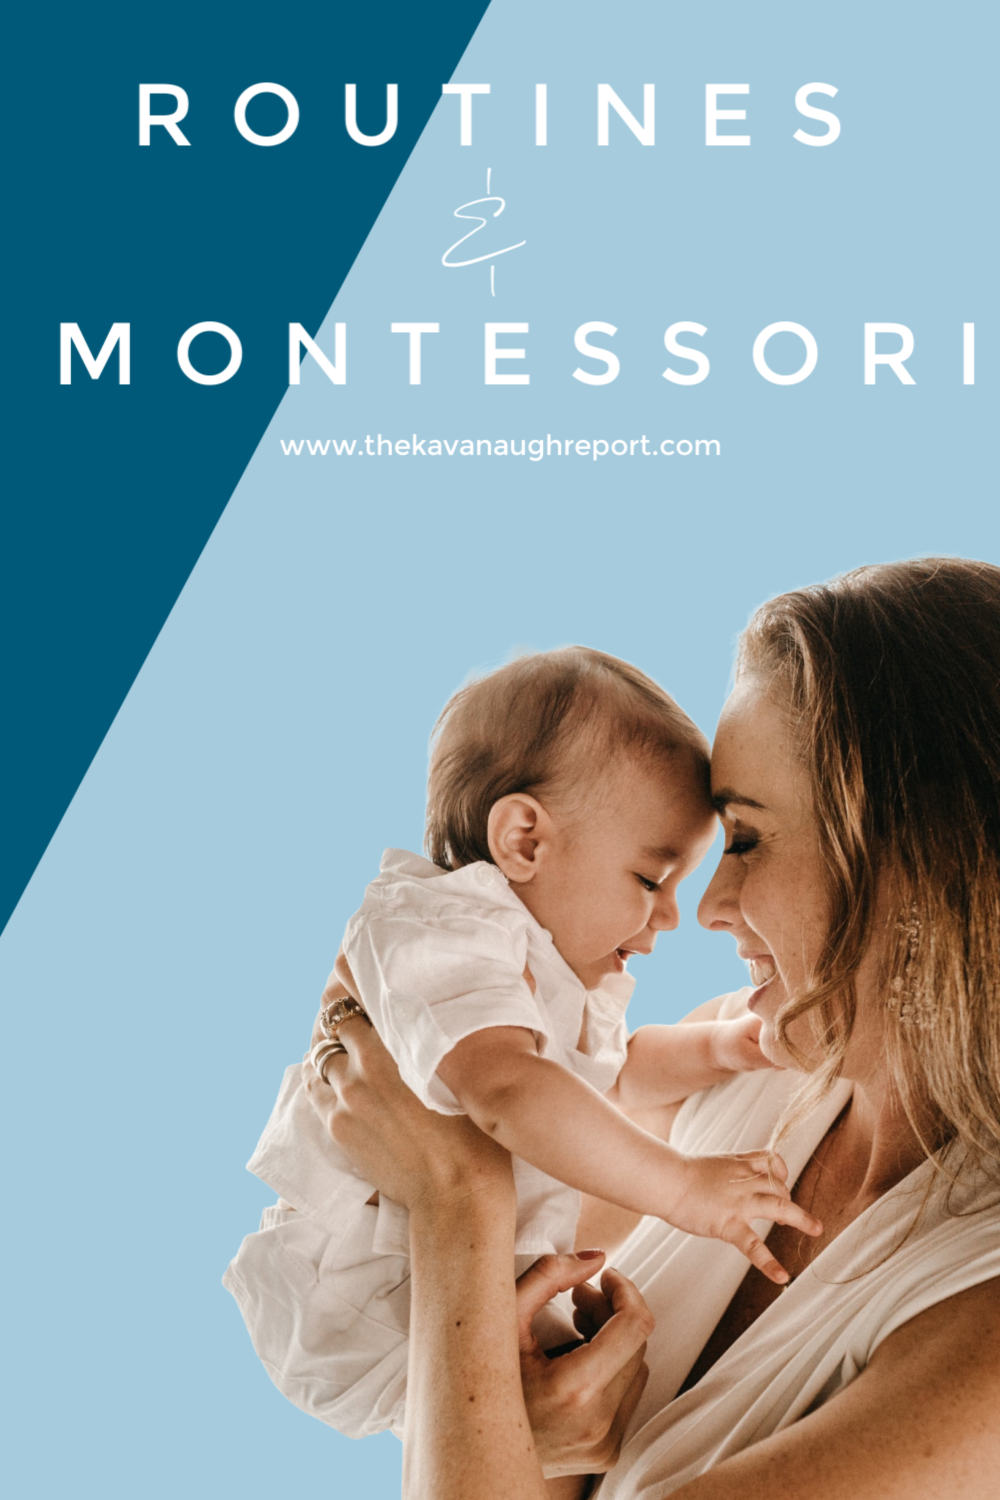 Montessori parenting advice podcast with tips on how to create a routine and rhythm for young children. Plus a look at using daily affirmations with older kids in Montessori homes.